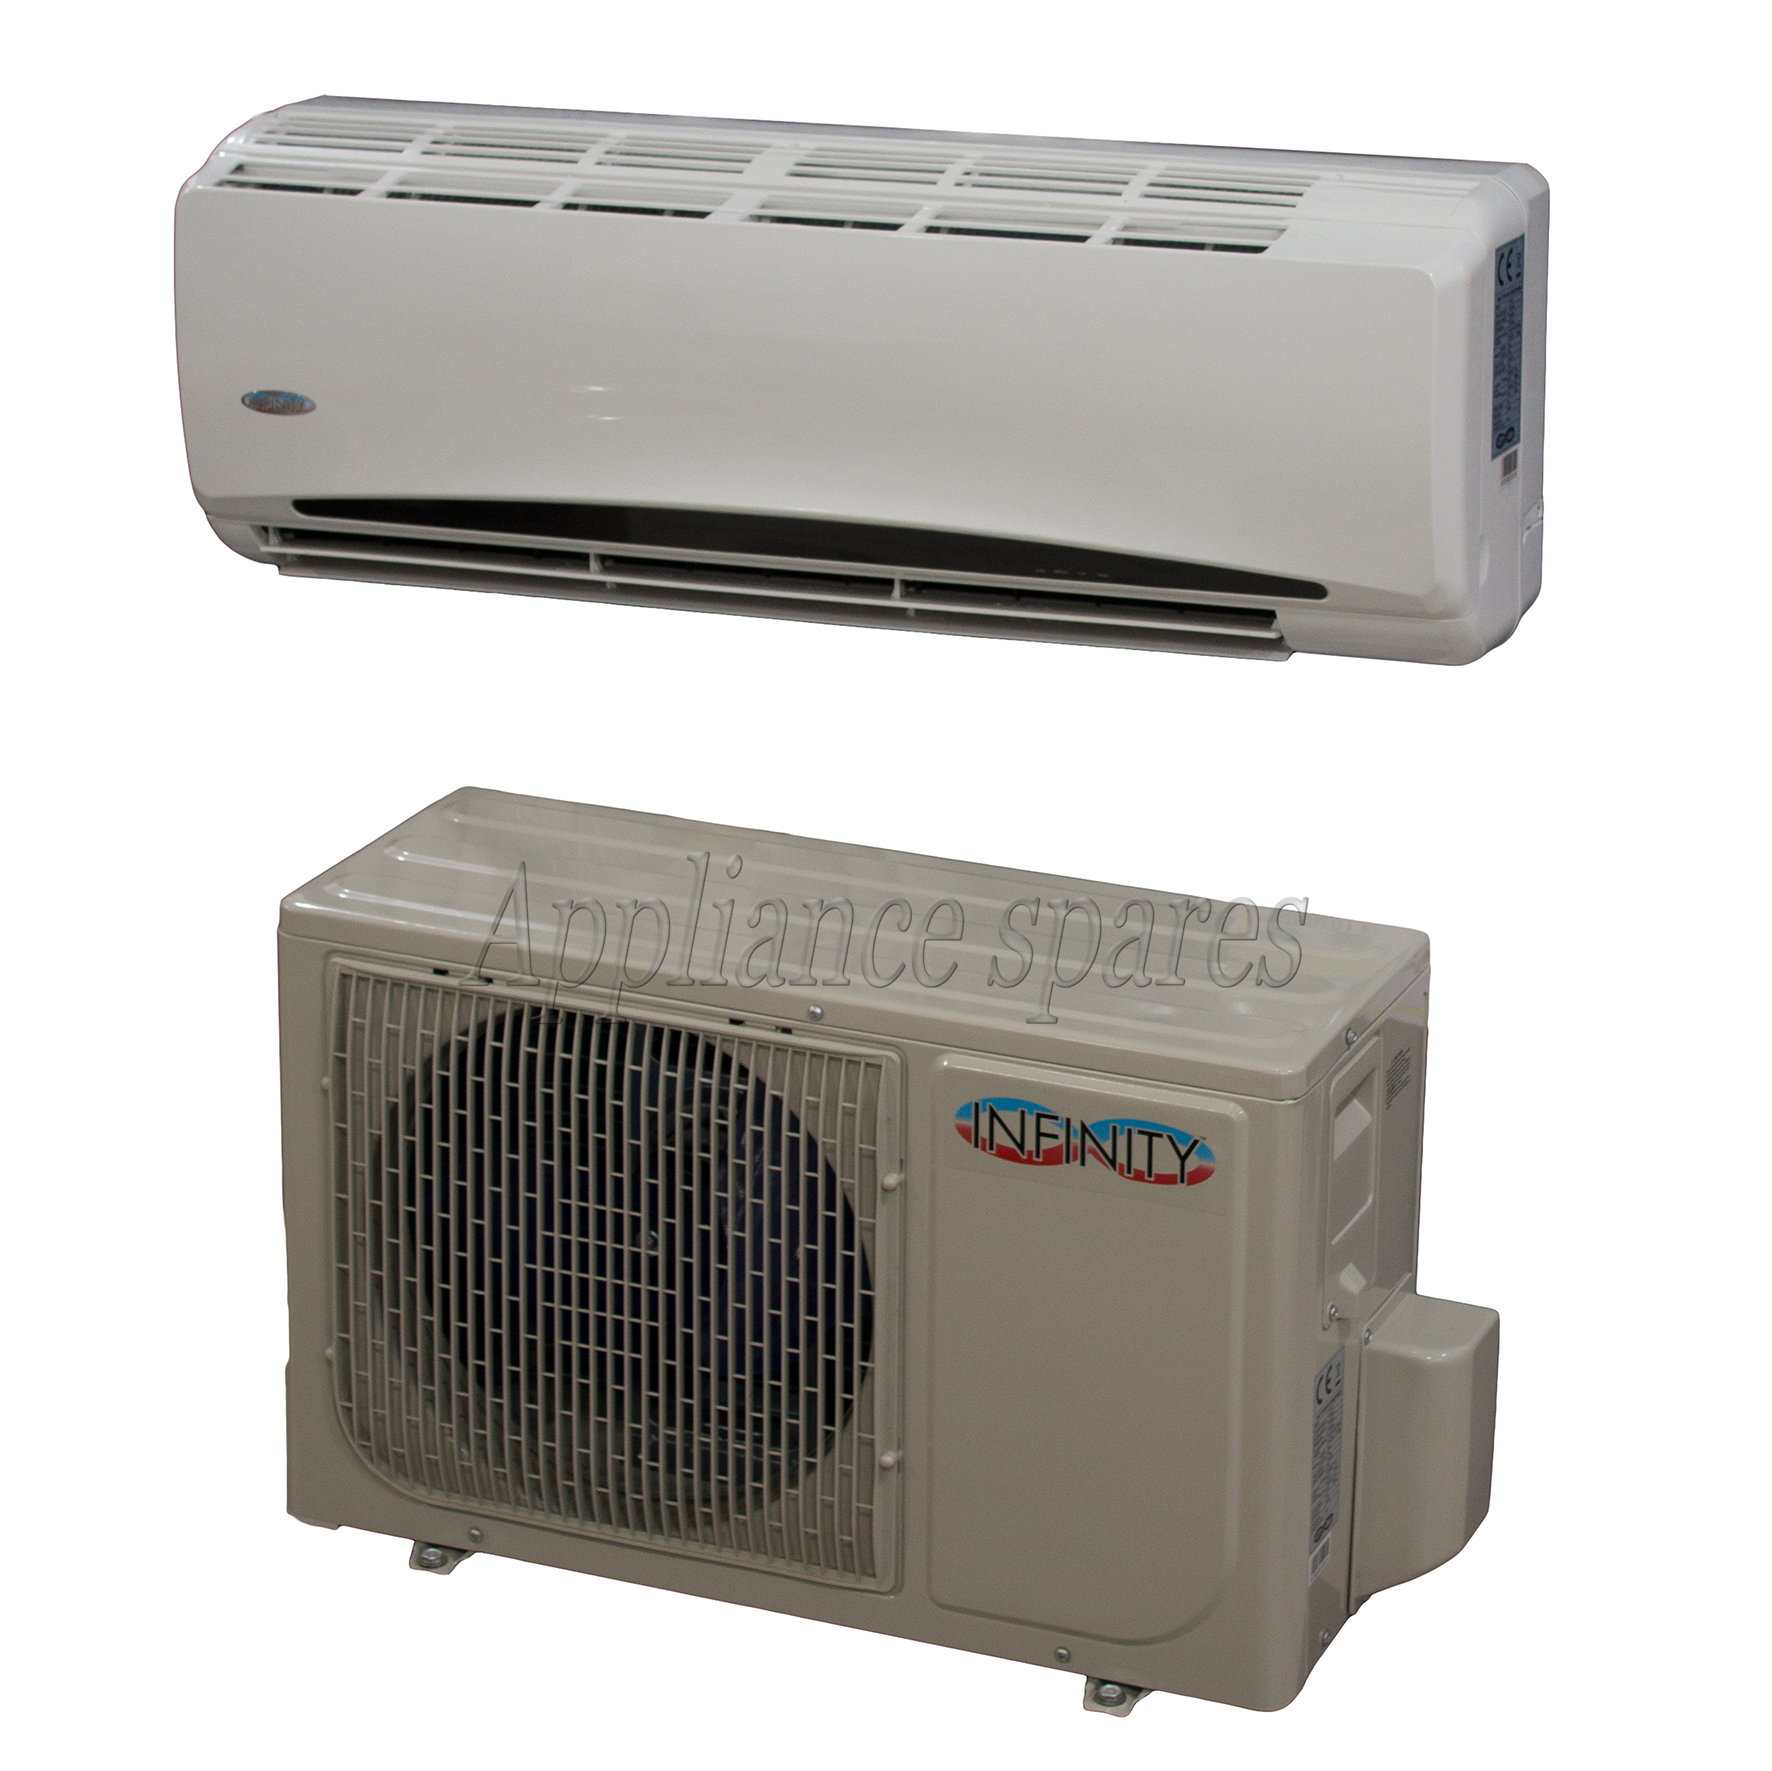 INFINITY AIR CONDITIONER 9000 BTU MIDWALL SPLIT INCLUDING 3m PIPE KIT  #2F6273